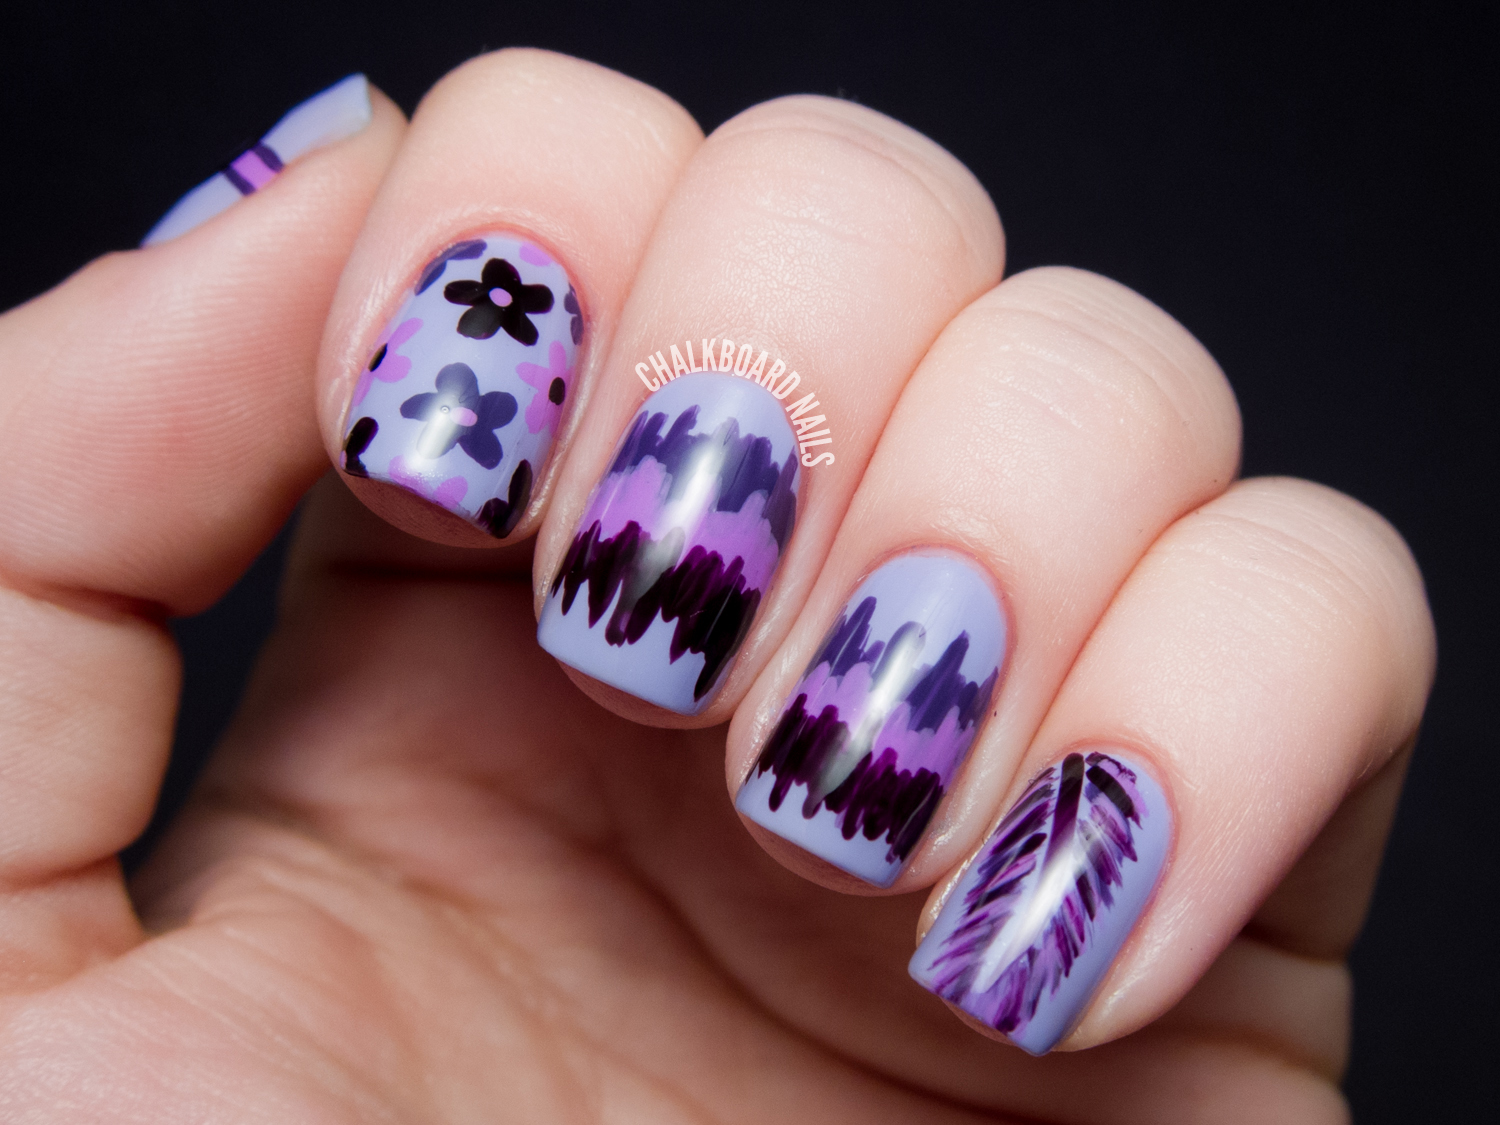 31dc2013 day 06 violet hippie mix chalkboard nails nail art blog im so happy that i had an easier time coming up with this nail art than i did on blue day two days in a row of that and i think i prinsesfo Choice Image